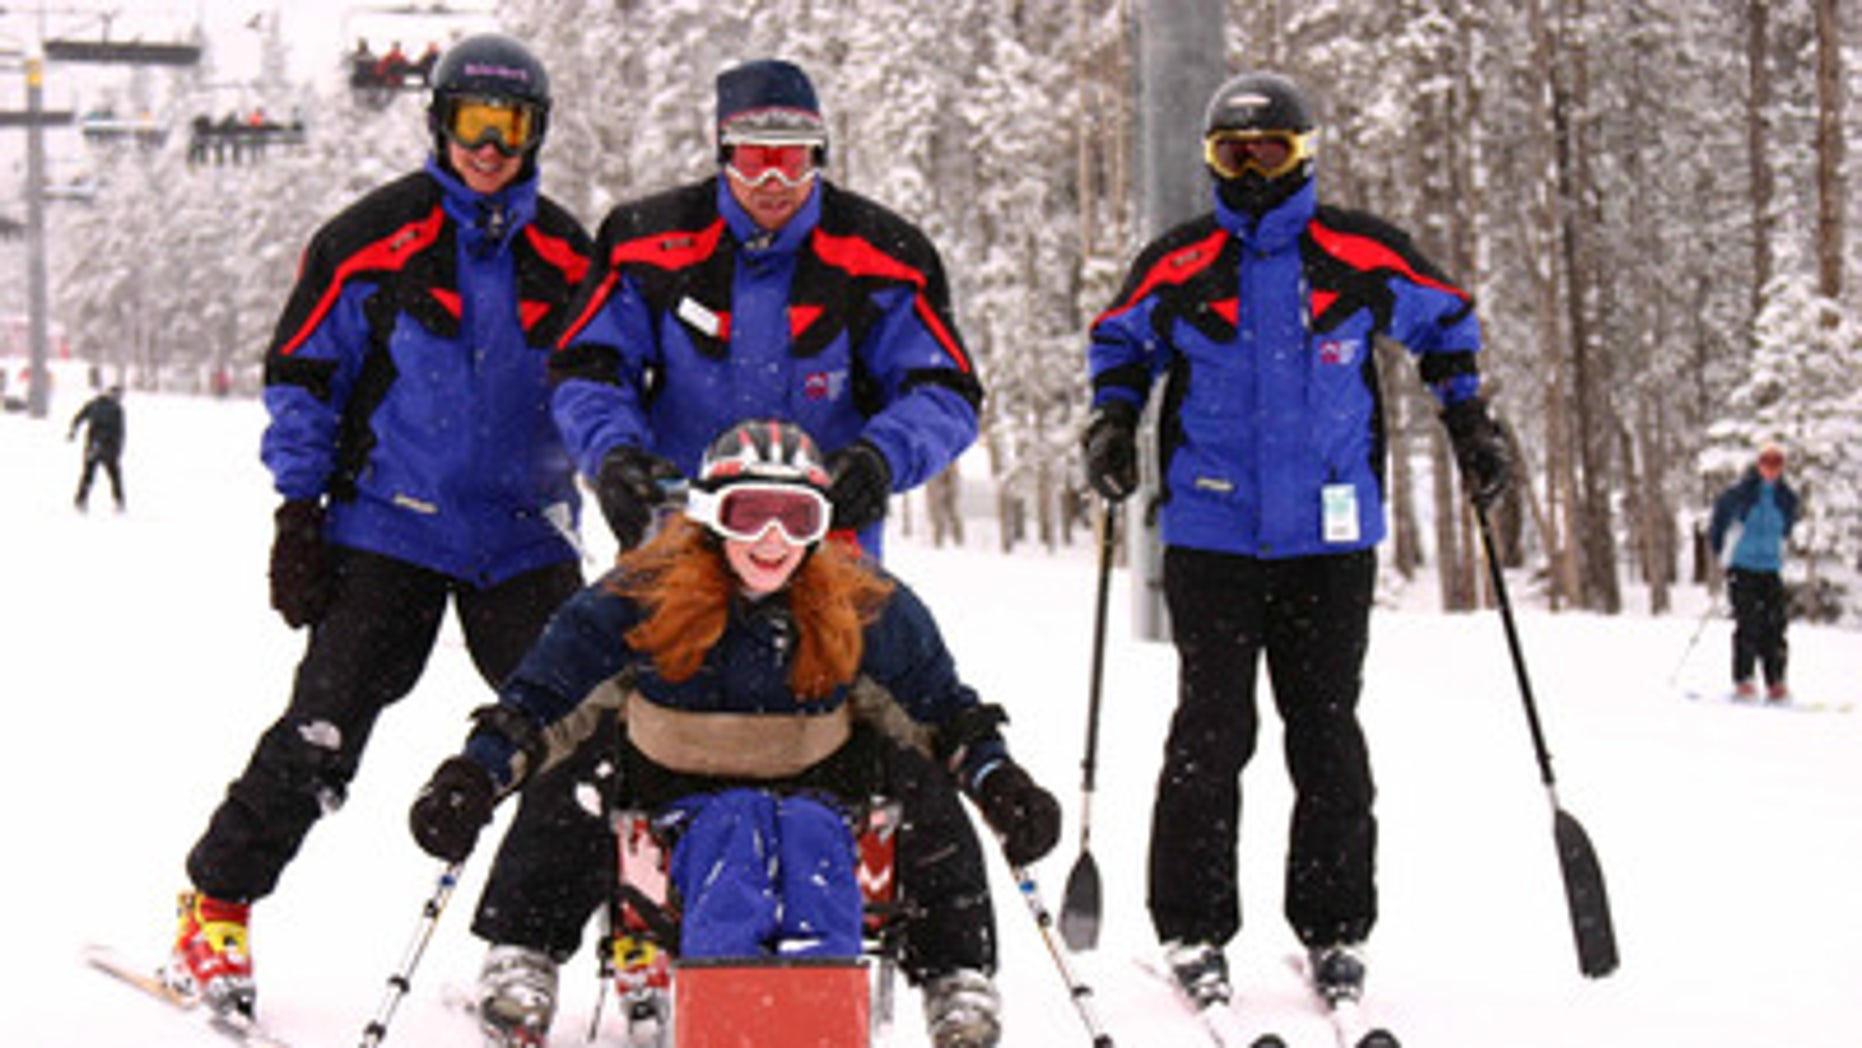 Adaptive skiing with the whole family at Breckenridge Outdoor Education Center.